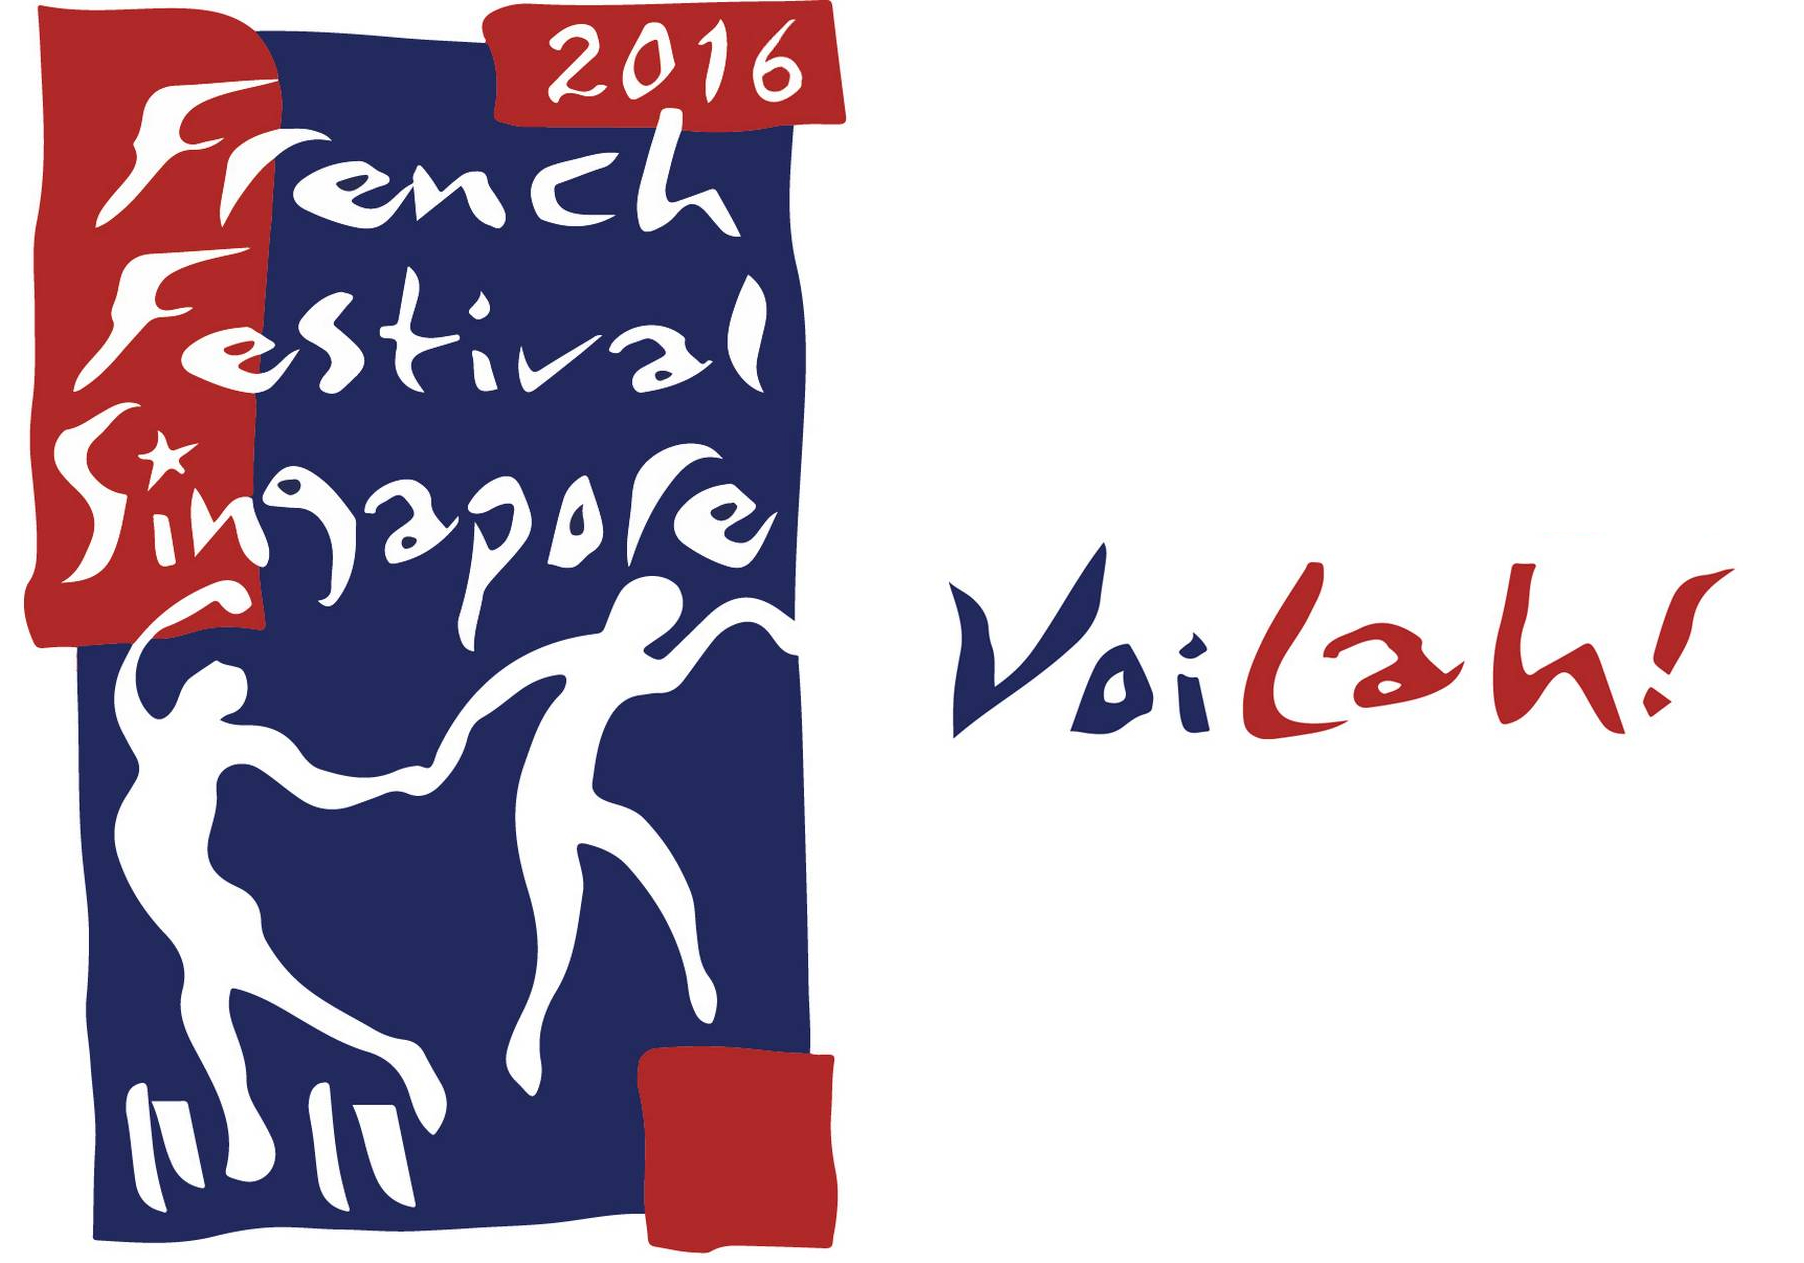 The Voilah Singapore festival logo